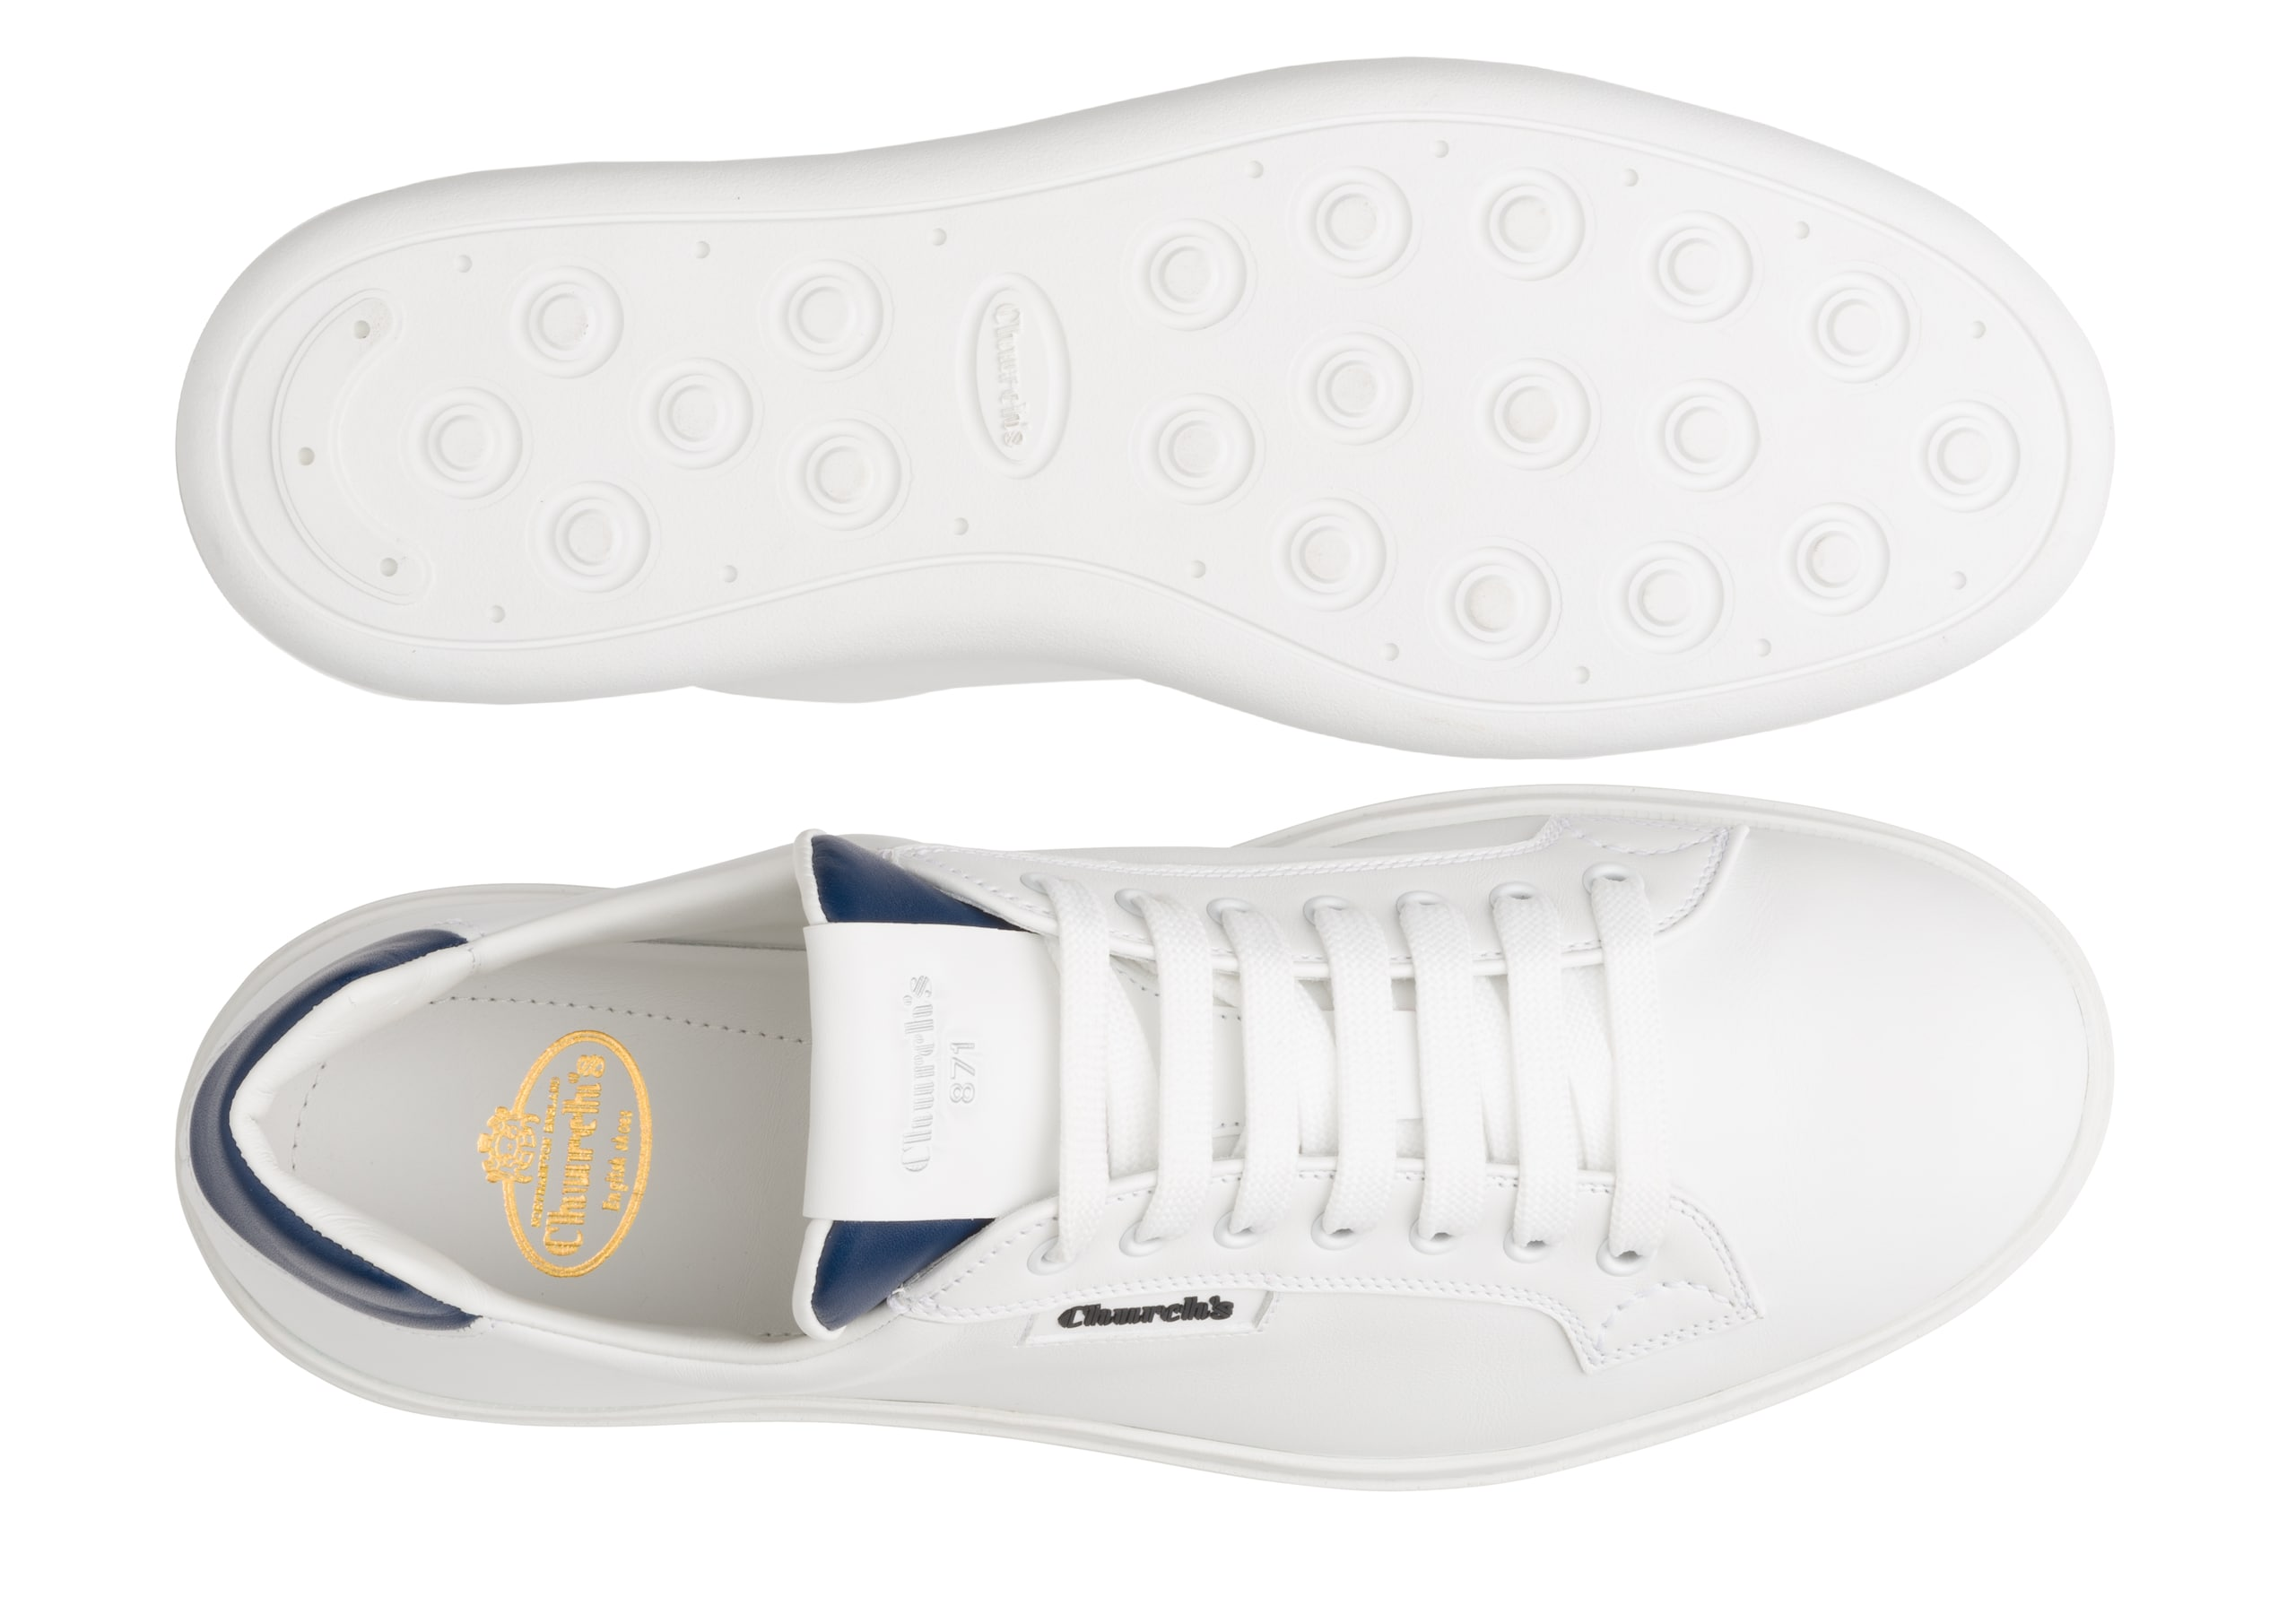 Ch871 Church's Sneaker classica in pelle di vitello plume Bianco